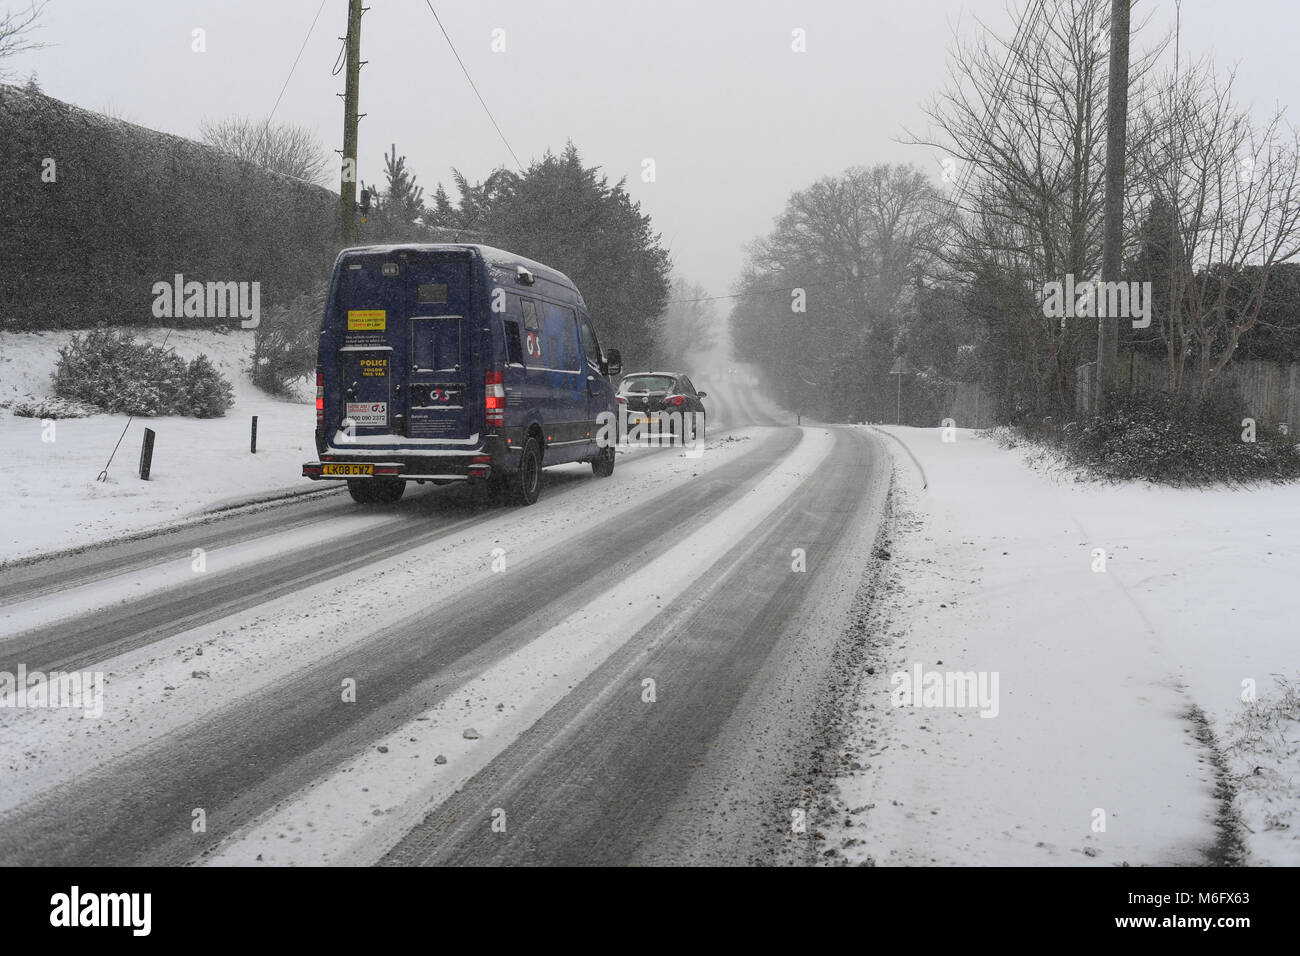 A G4S security money van driving in the snow in treacherous conditions. - Stock Image